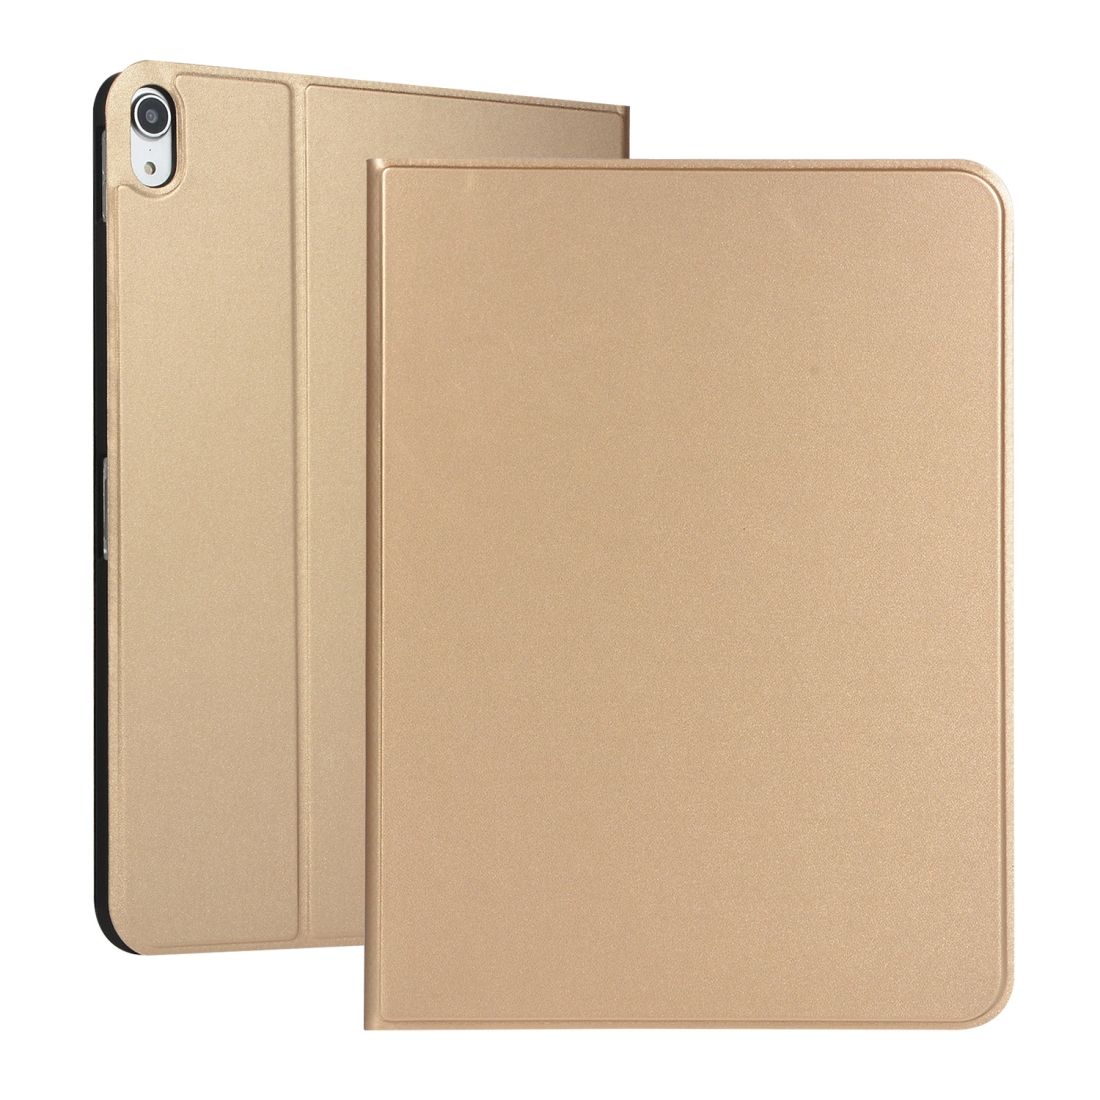 Elastic Leather iPad Pro 11 Case With Auto Sleep, Durable Soft Shell Bottom (Gold)